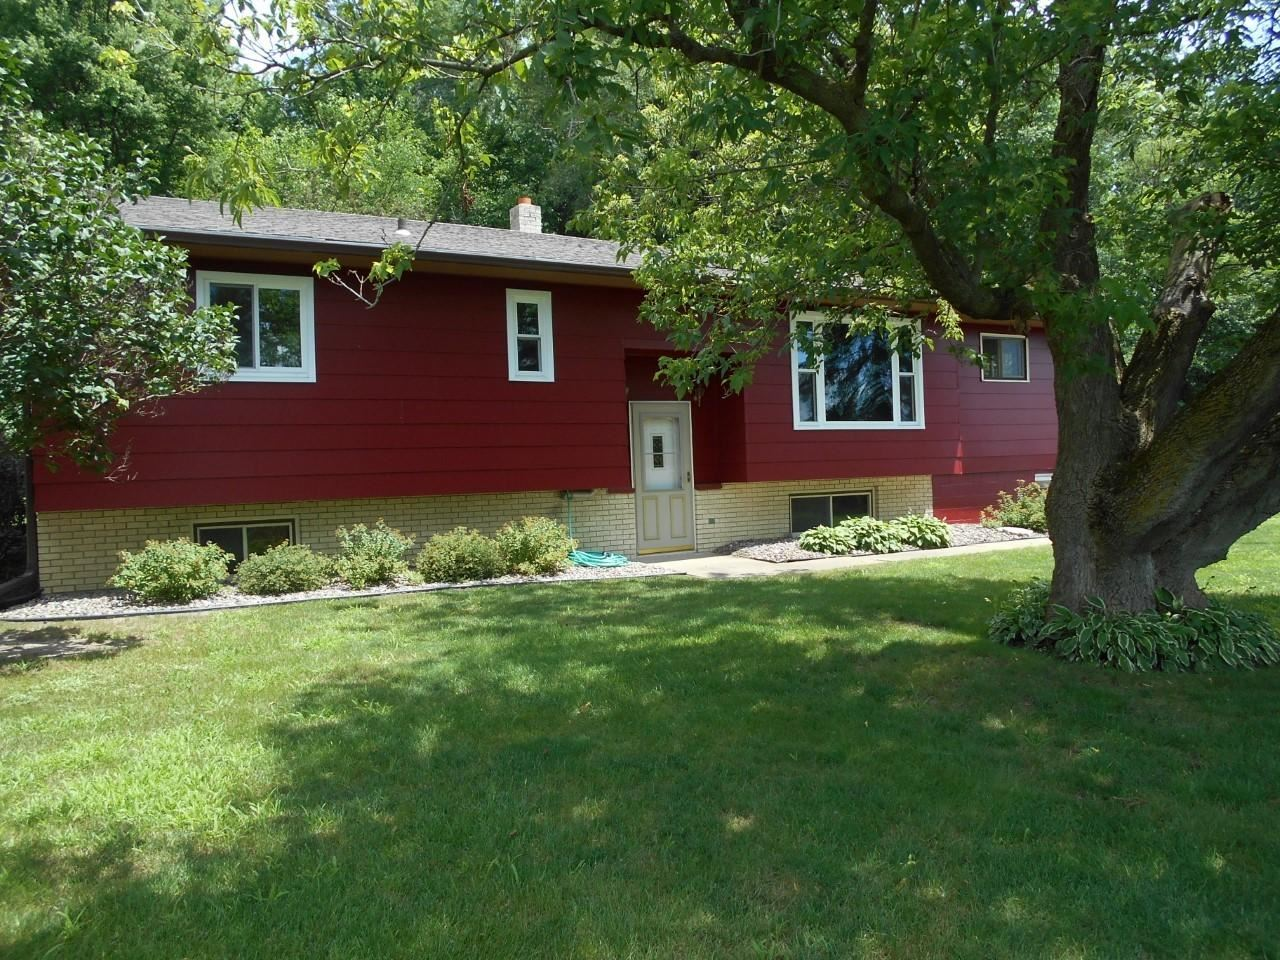 N6064 County Road SN, Onalaska, WI 54650 - MLS#: 1699746